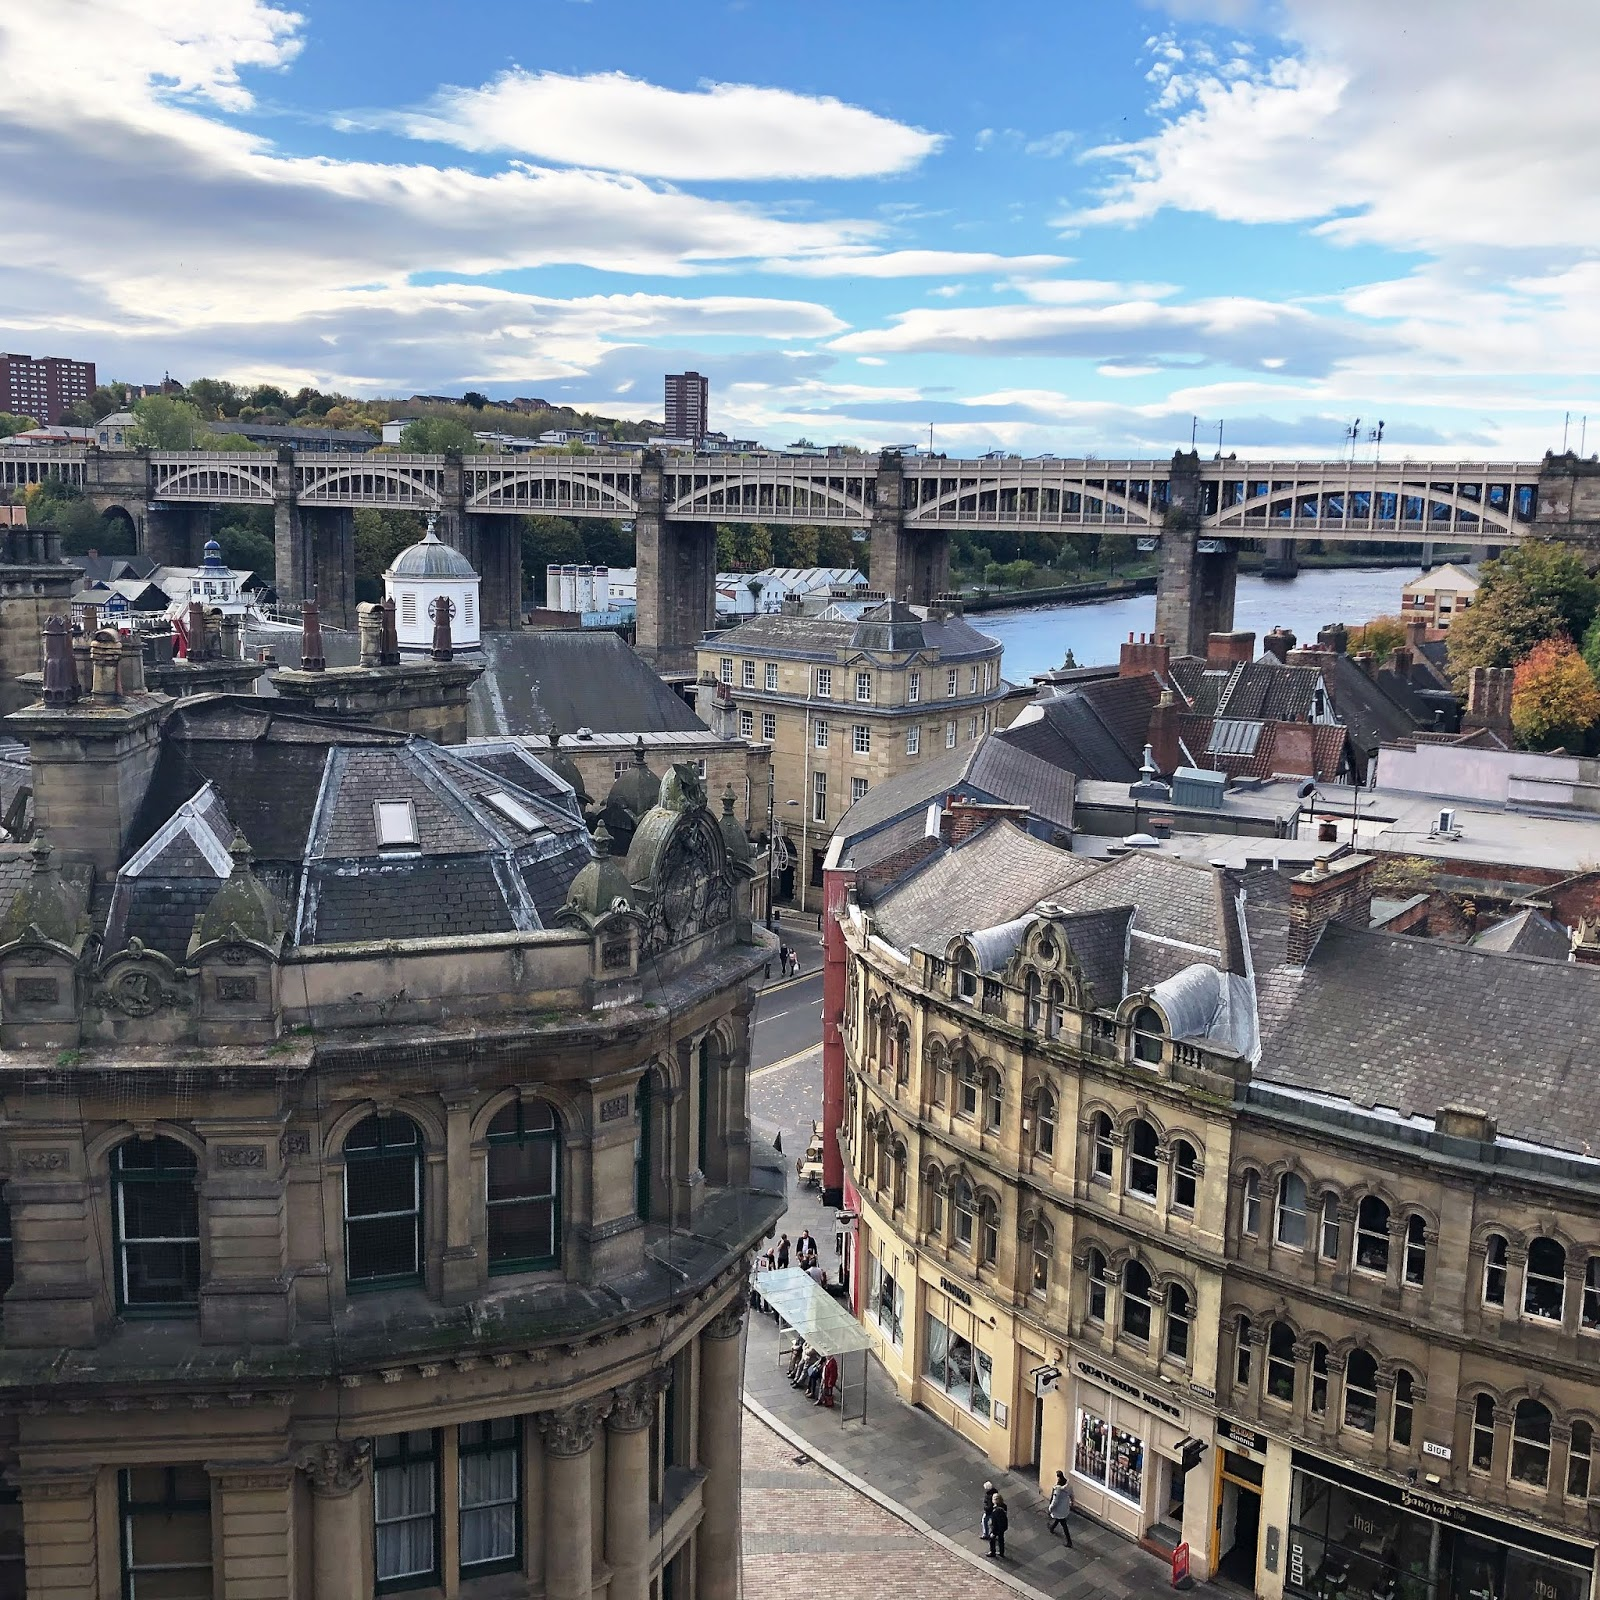 My October Days - Tyne Bridge